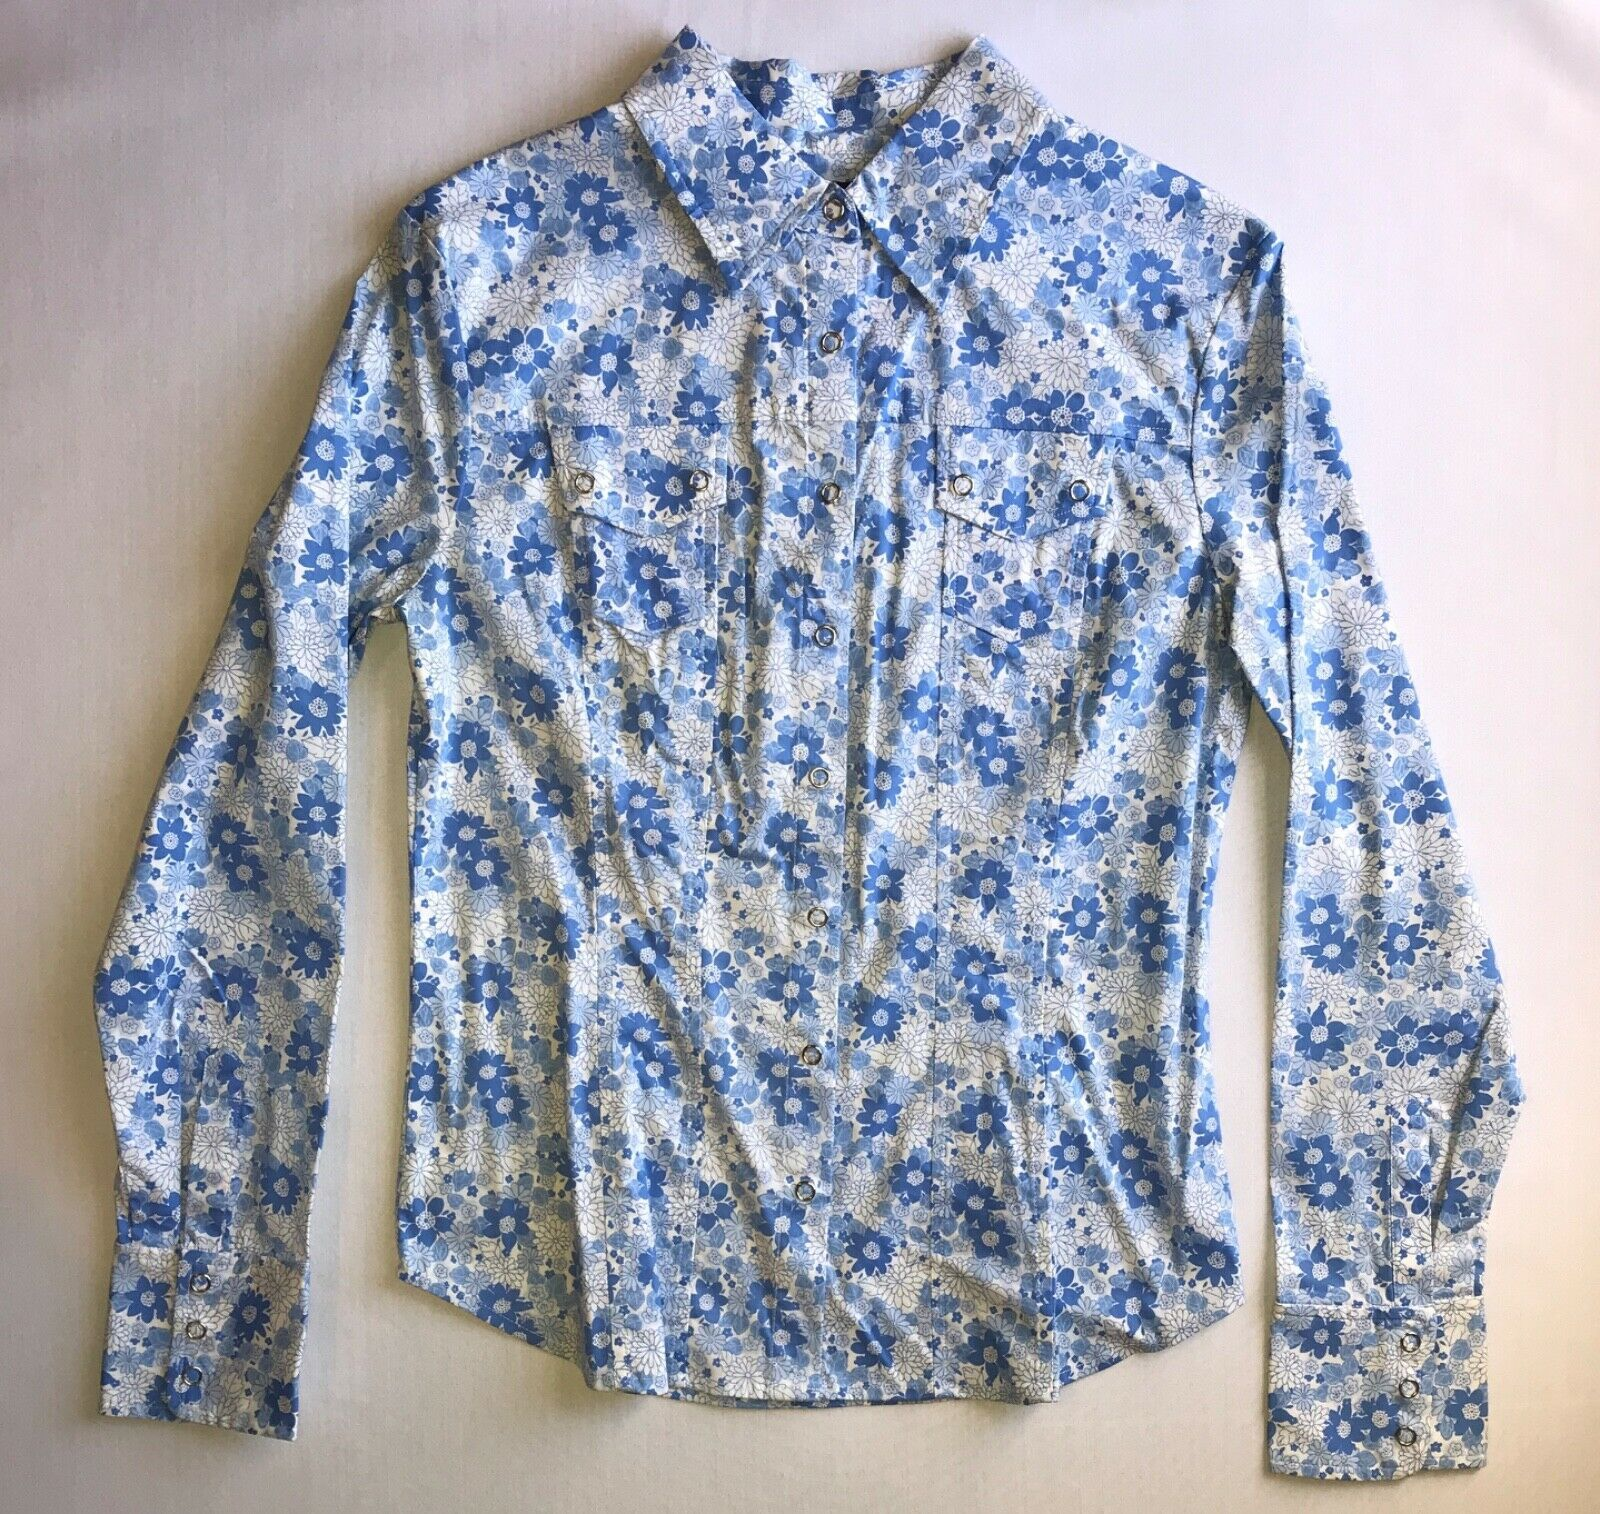 Primary image for Fitted Button Up Floral long sleeve & collared Shirt in 7/8 by Express Stretch